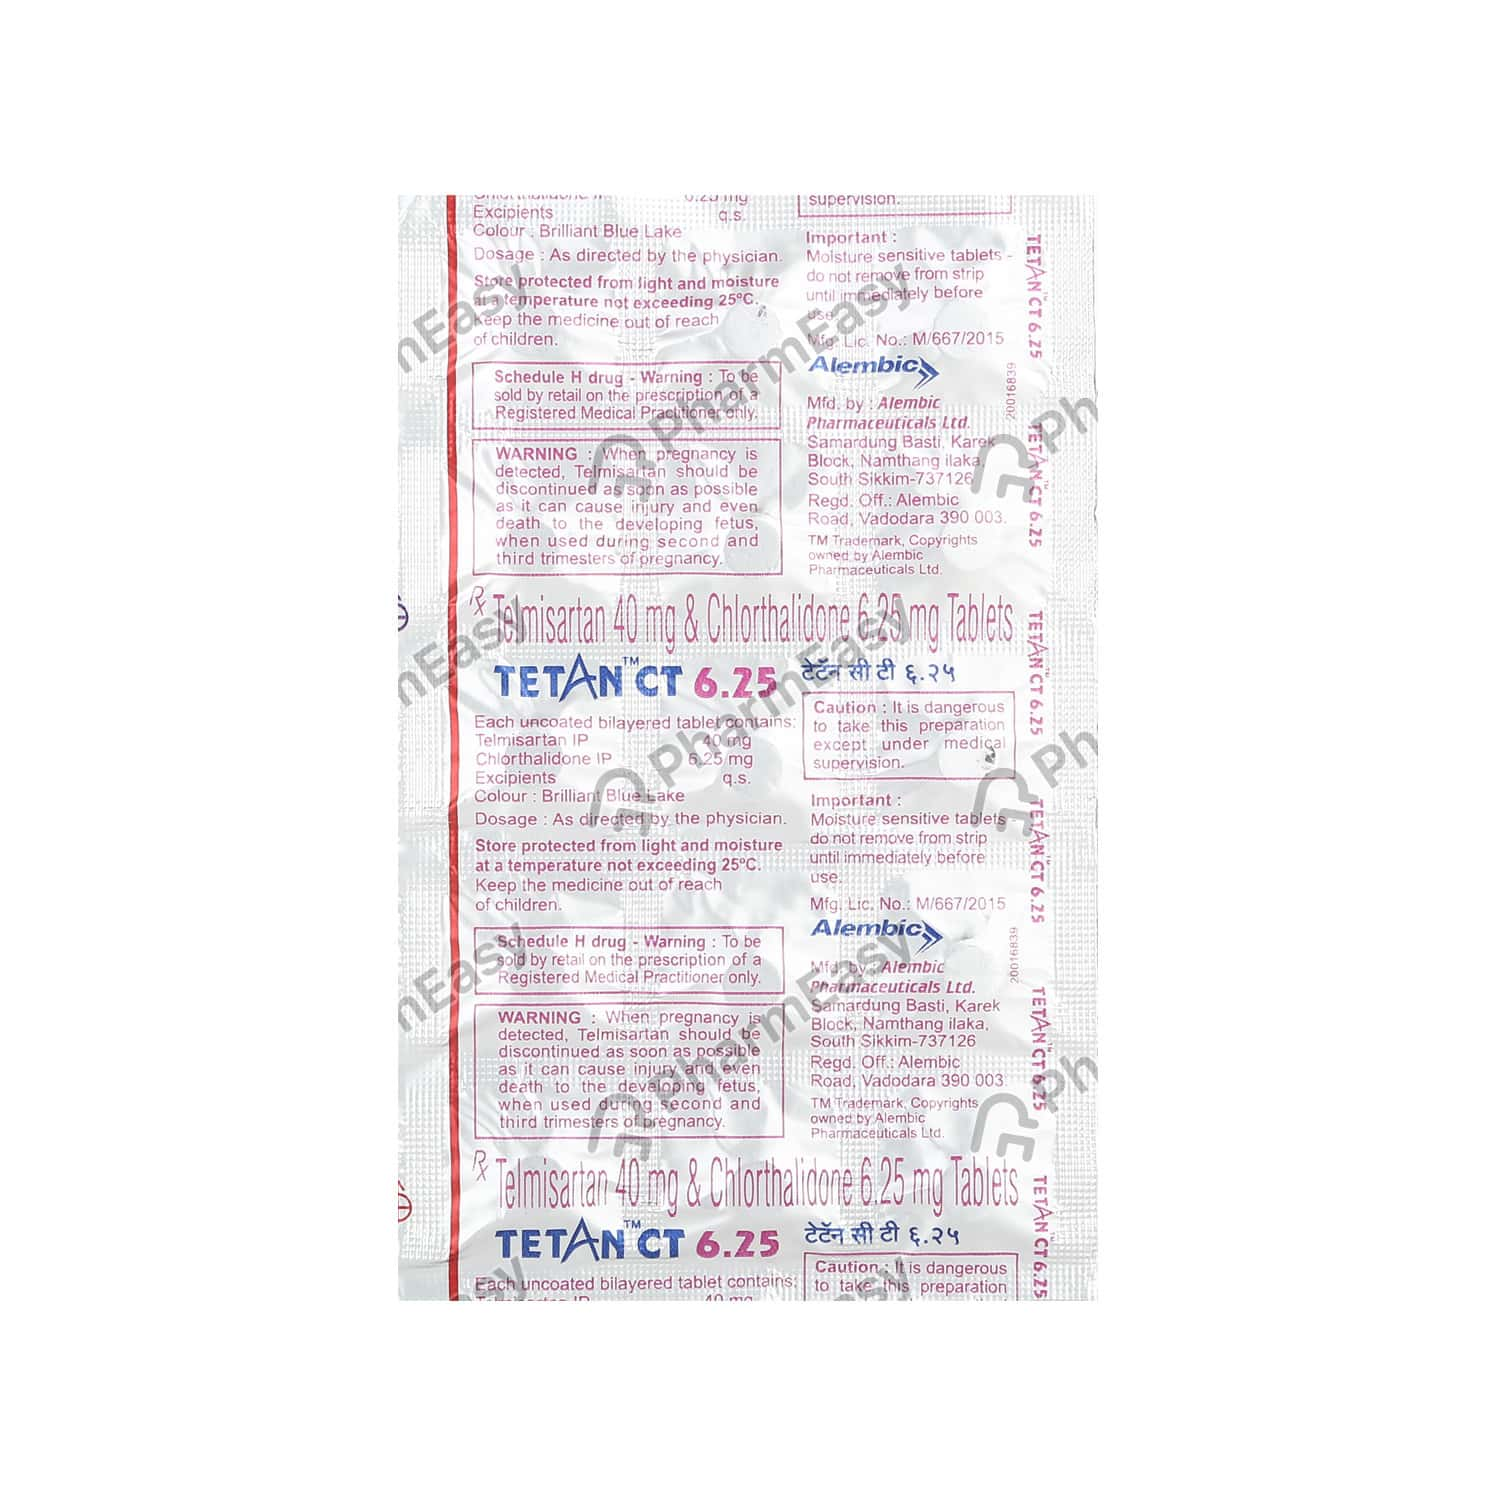 Tetan Ct 6.25mg Strip Of 15 Tablets